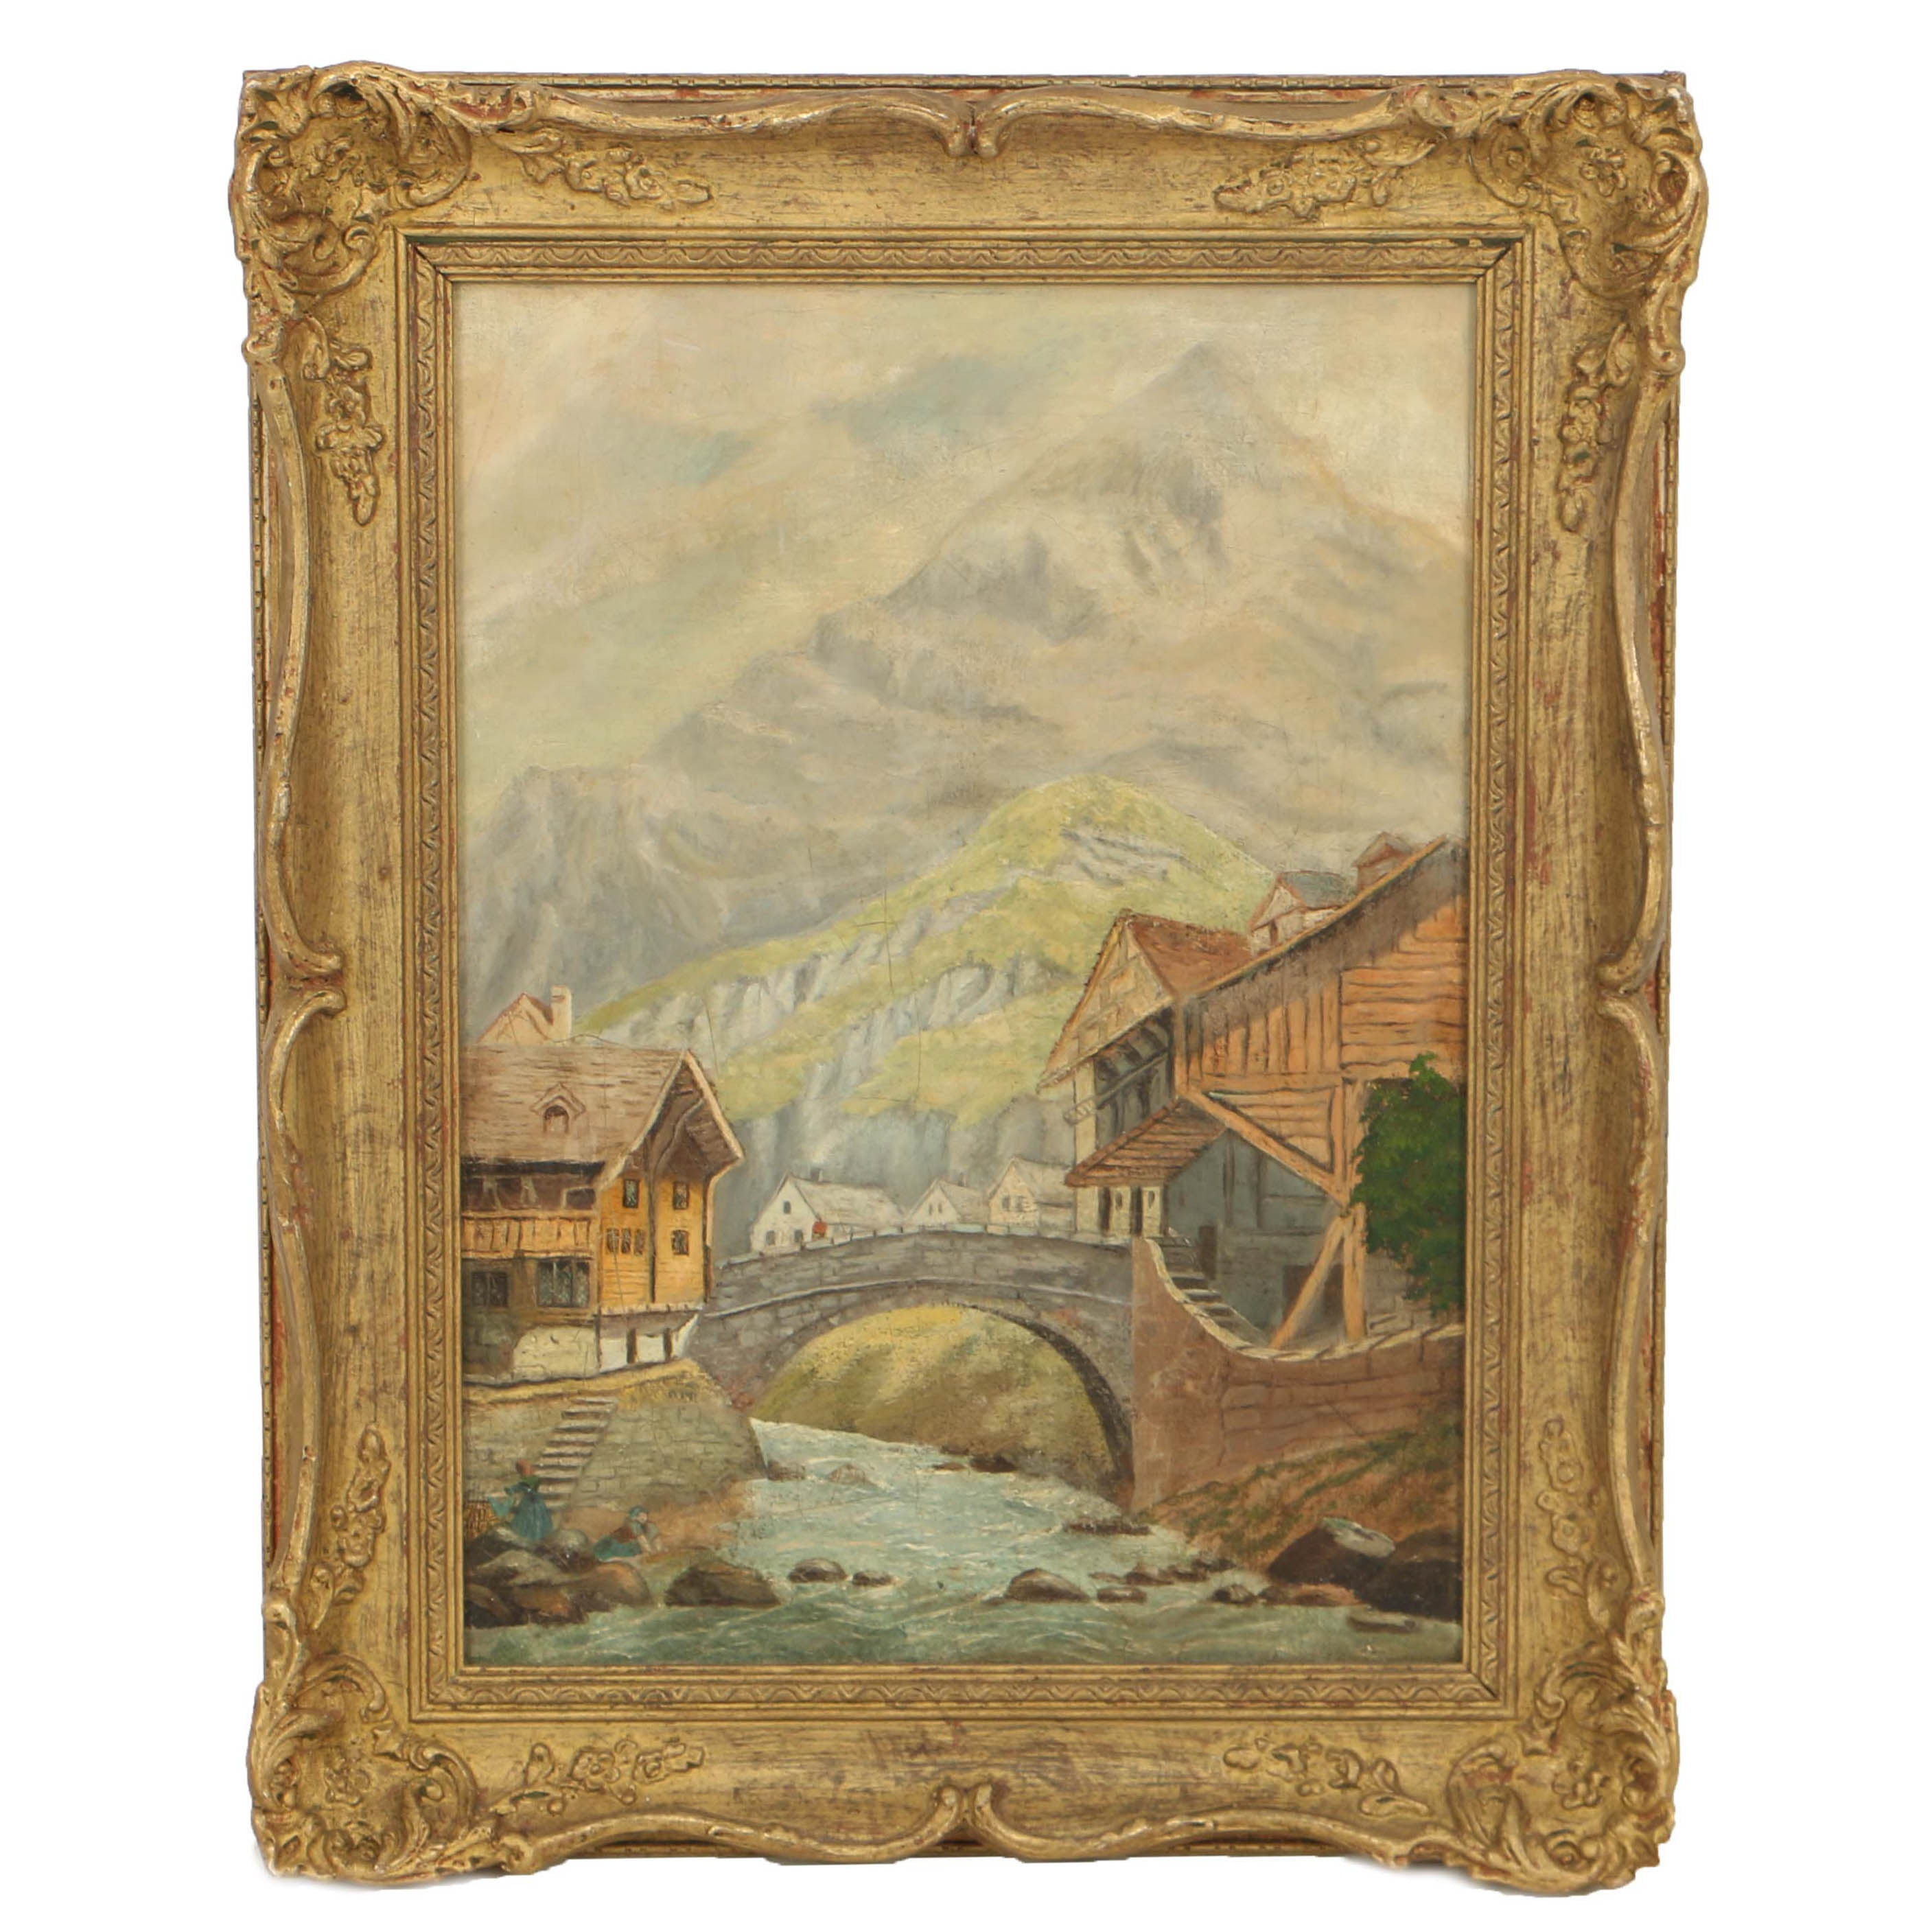 19th-Century Austrian School Oil Painting on Canvas of Alpine European Village